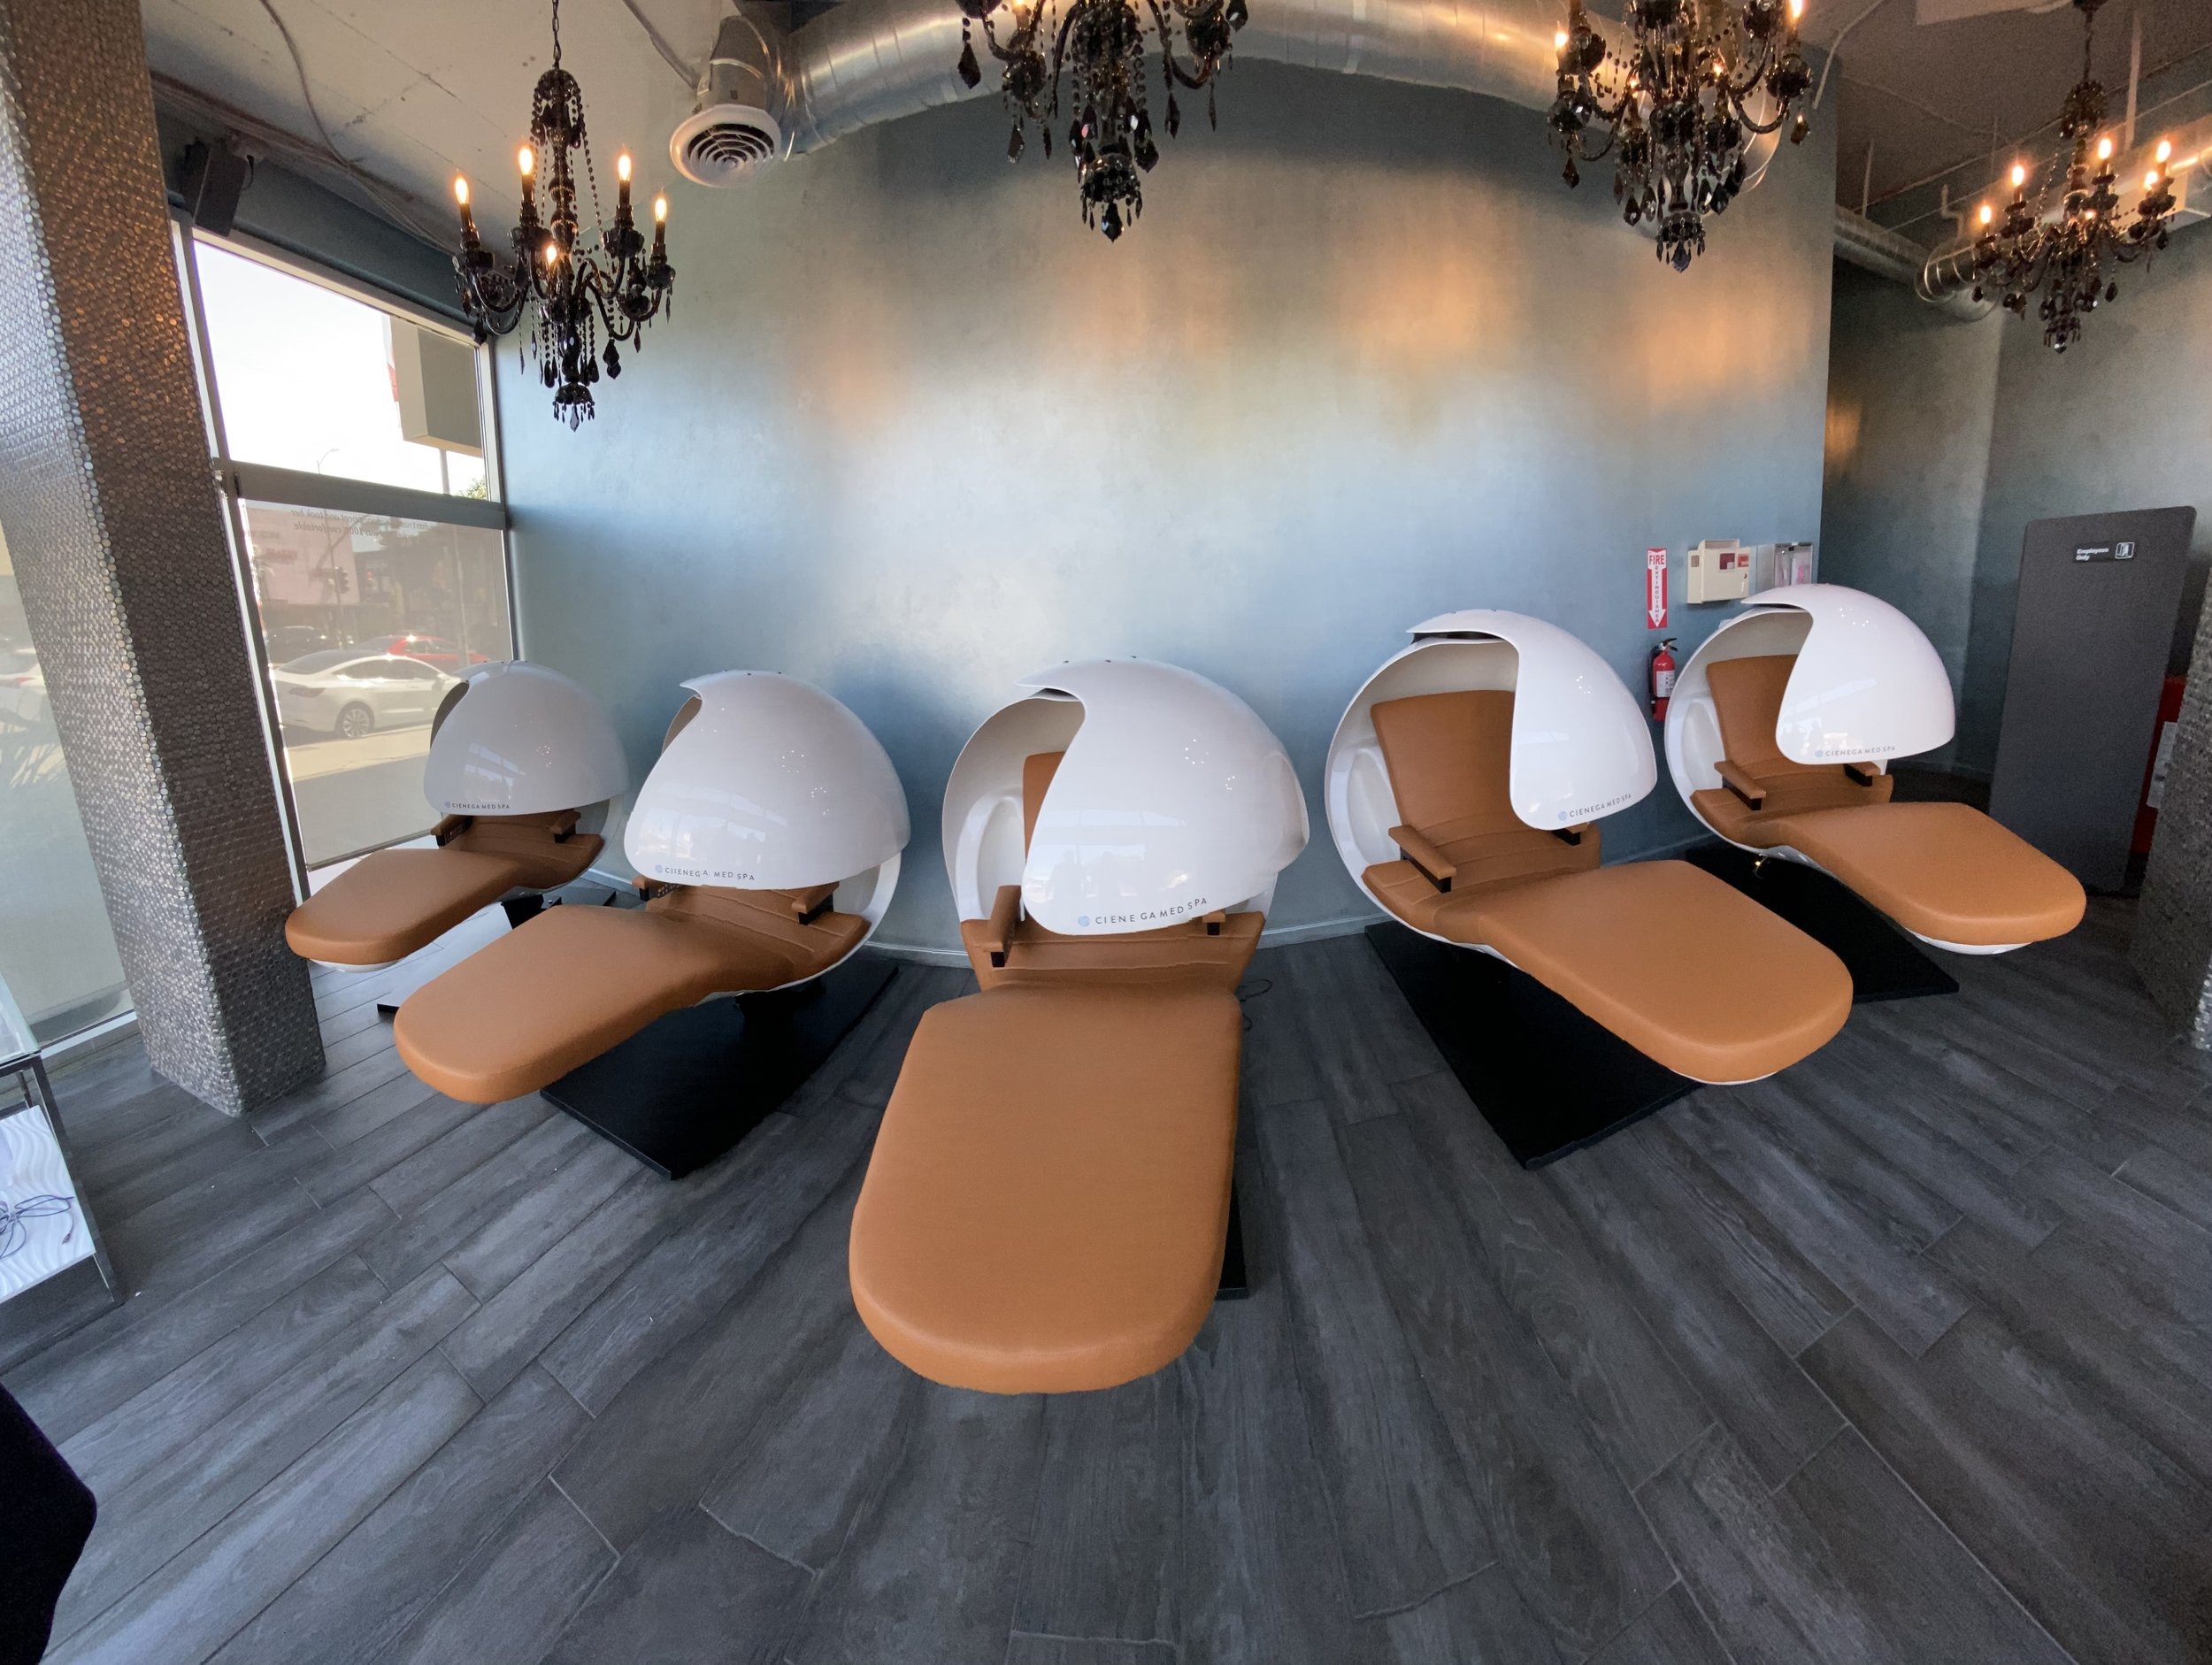 With locations in both Santa Monica and West Hollywood, Cienega Spa now offers its NAD IV and Cellular Detox Treatments in EnergyPods by MetroNaps. Clients will now get a rejuvenating rest while enjoying these unique services in the luxurious setting at Cienega. Learn more  here .